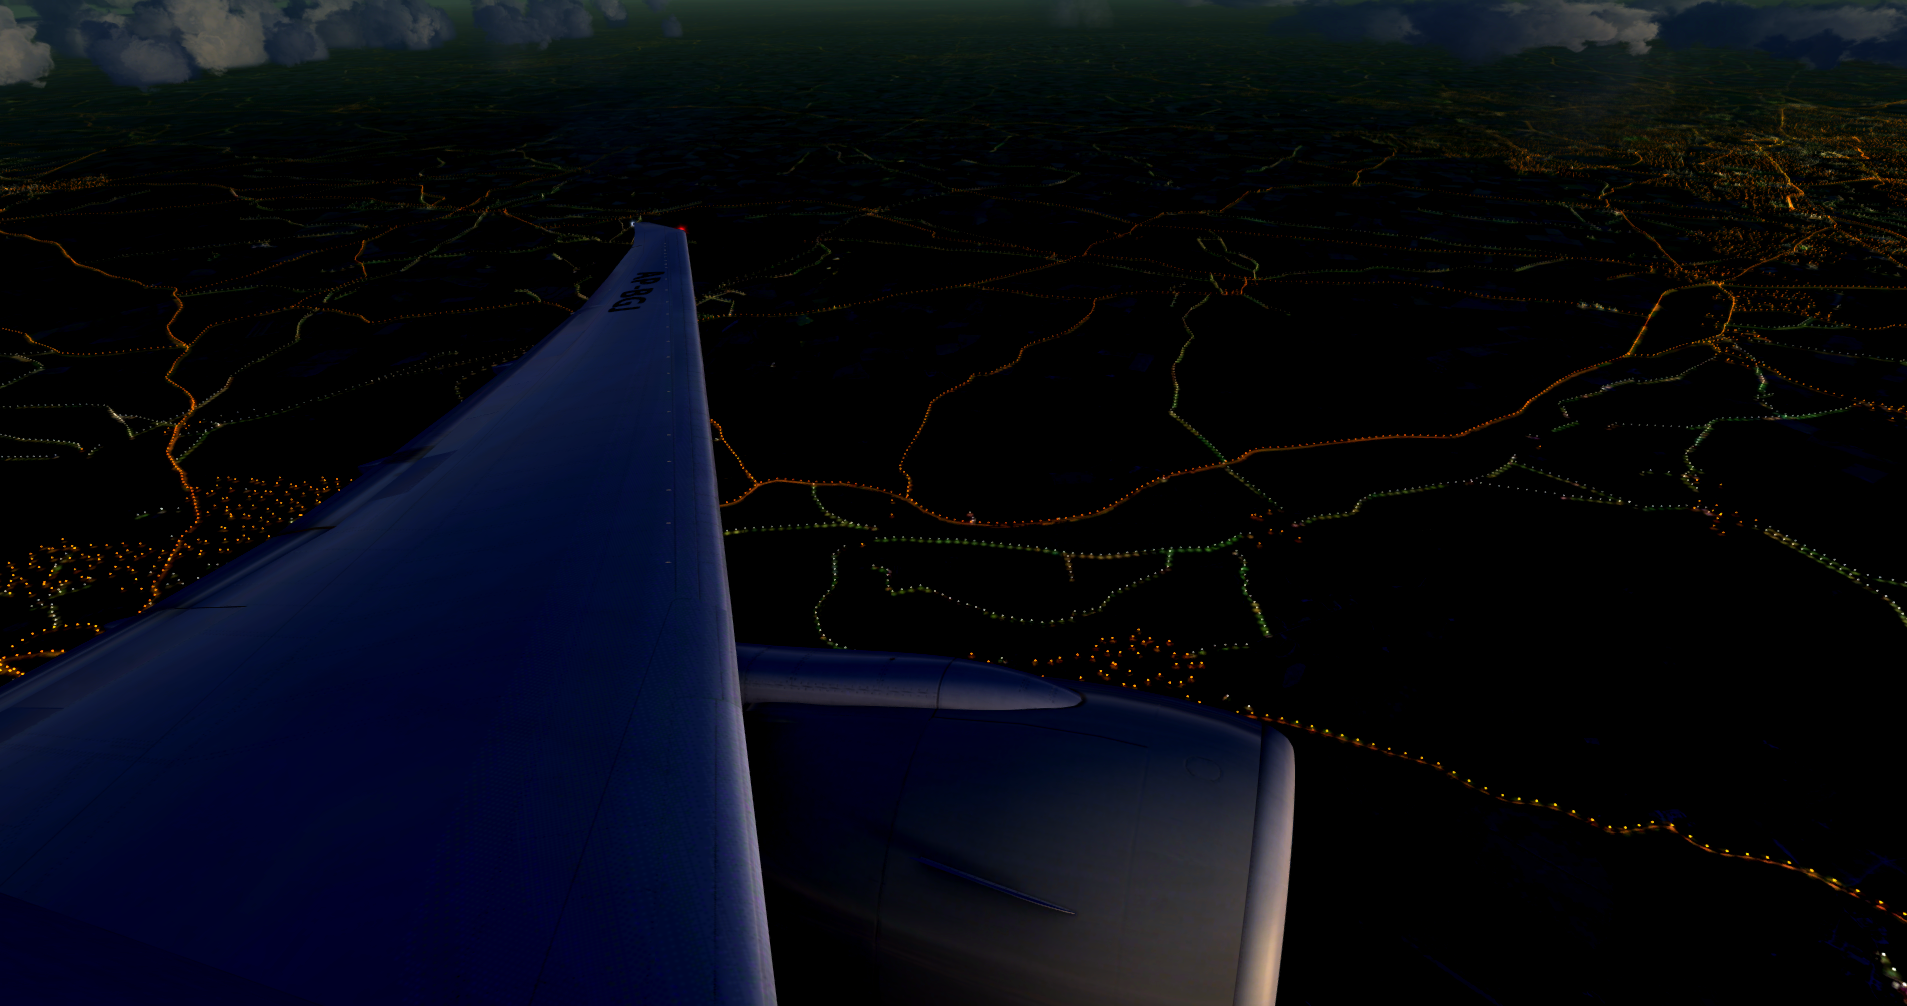 fsx%202014-05-15%2011-12-56-178.png